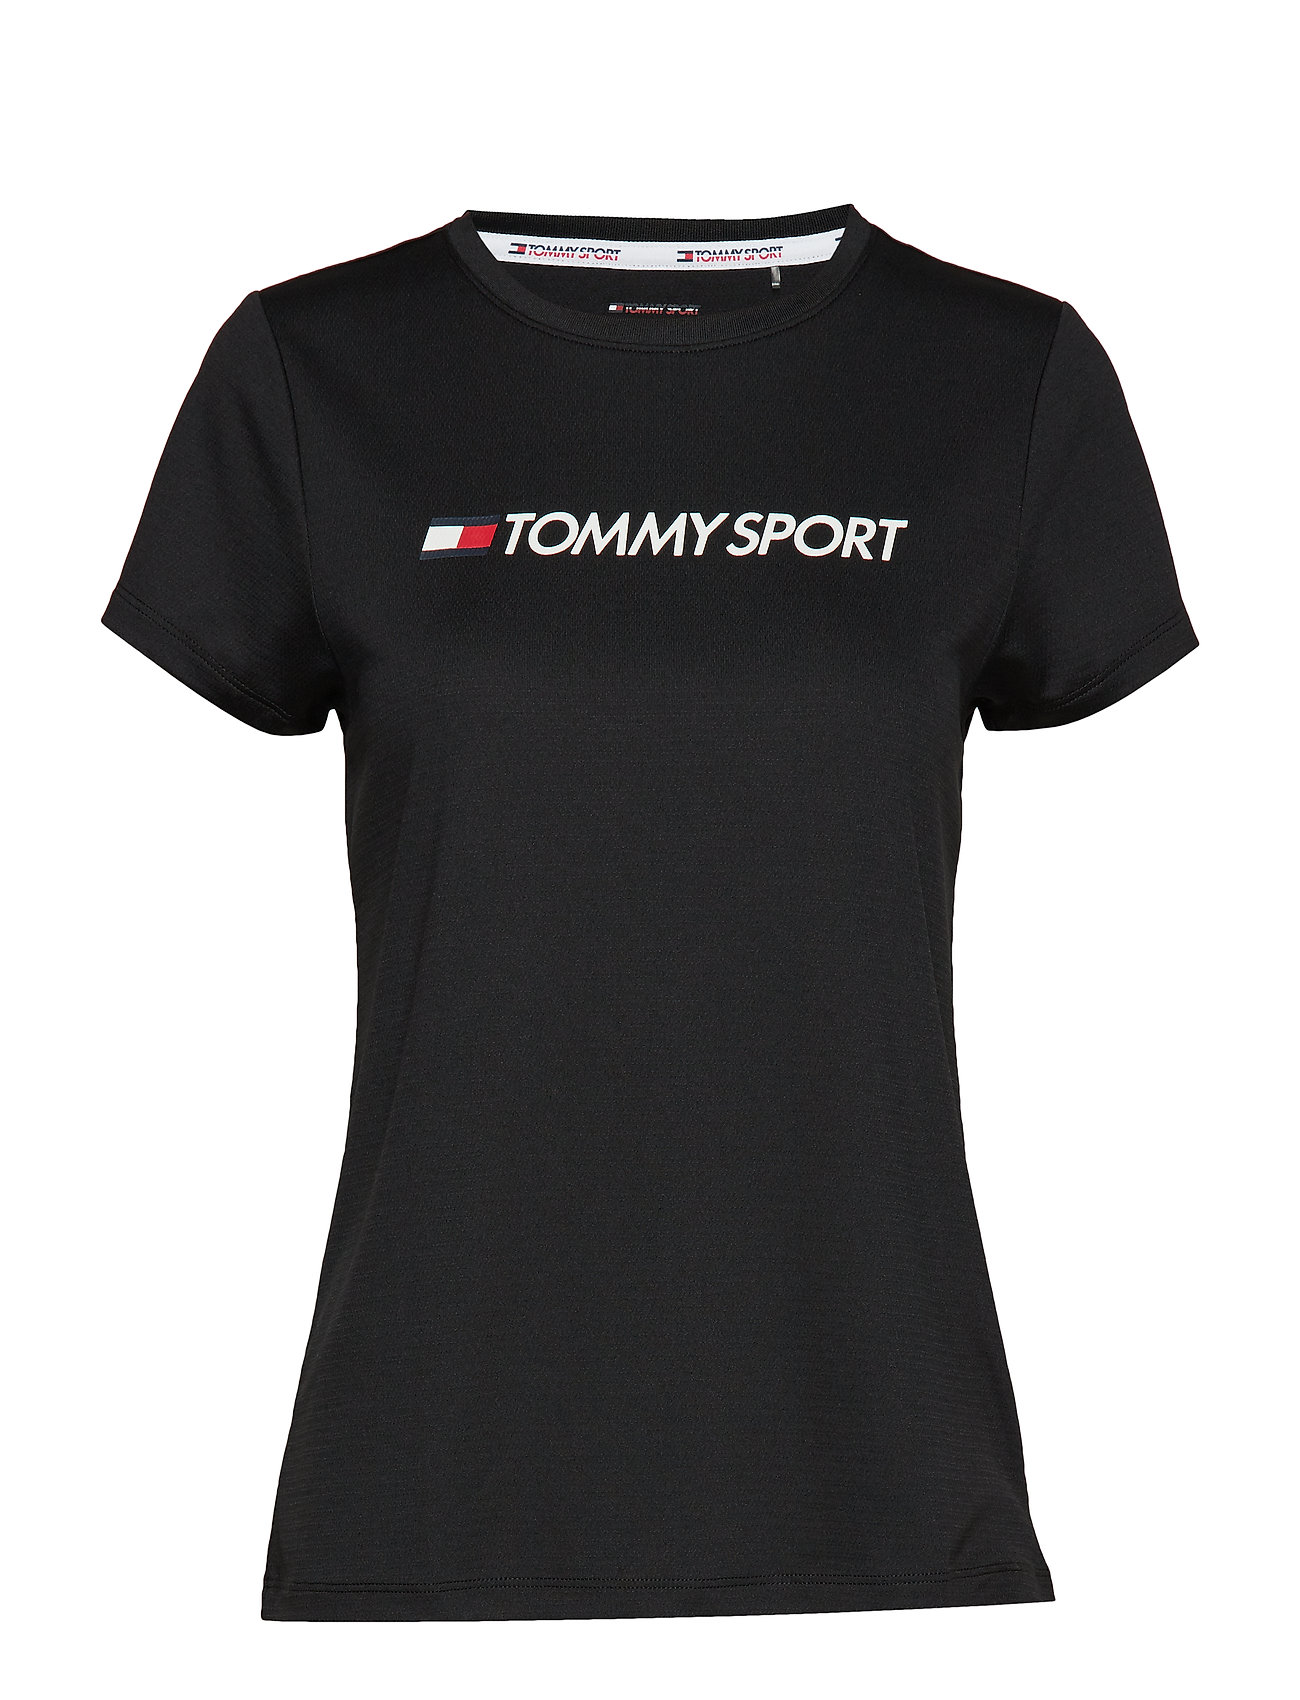 Image of Tee Chest Logo T-shirt Top Sort Tommy Sport (3144751567)